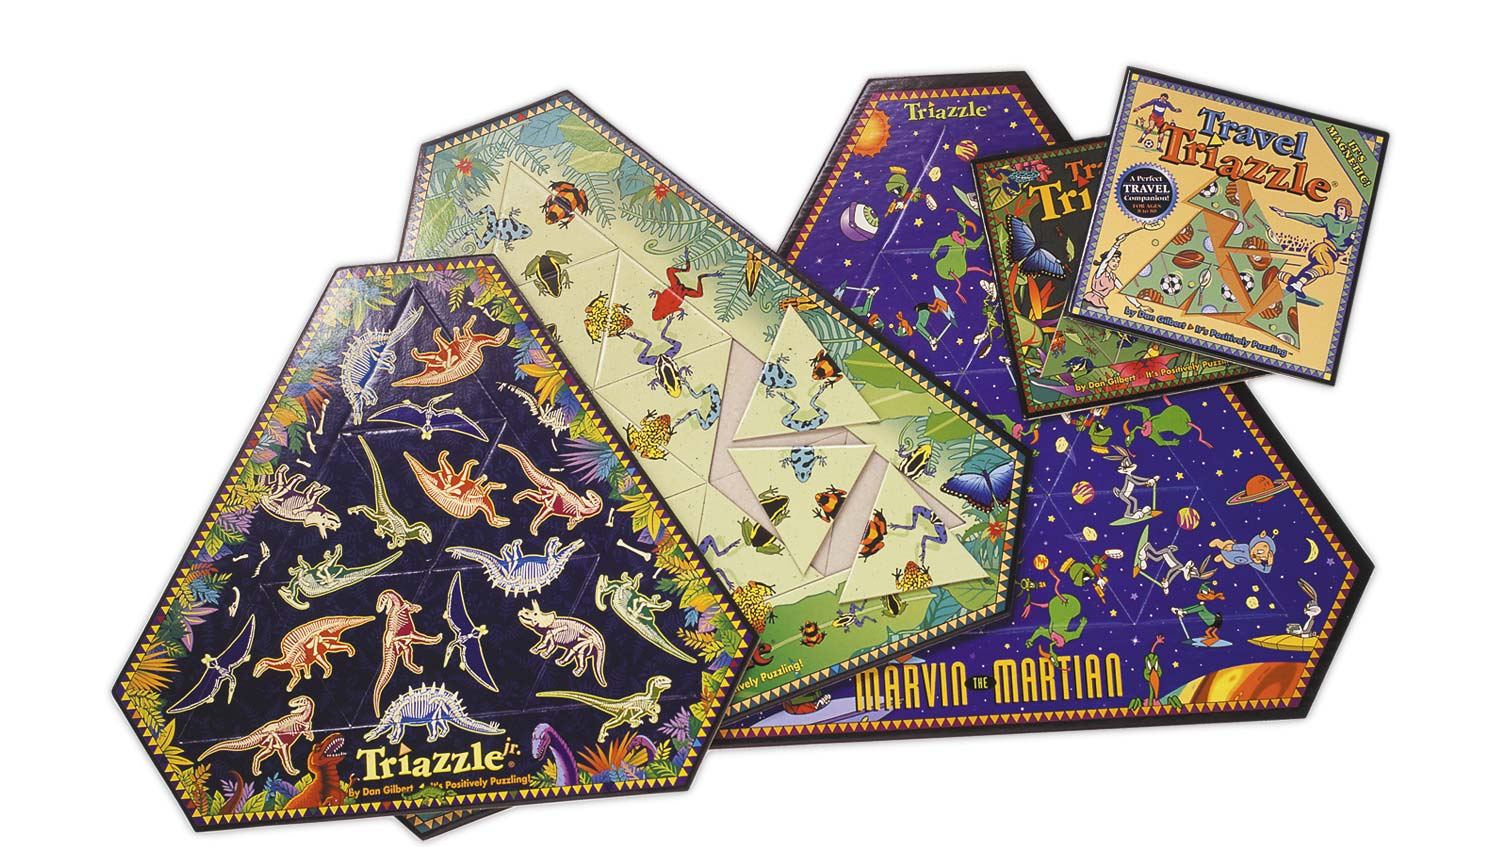 Triazzle puzzles for Dan Gilbert Inc. and The DaMert Company